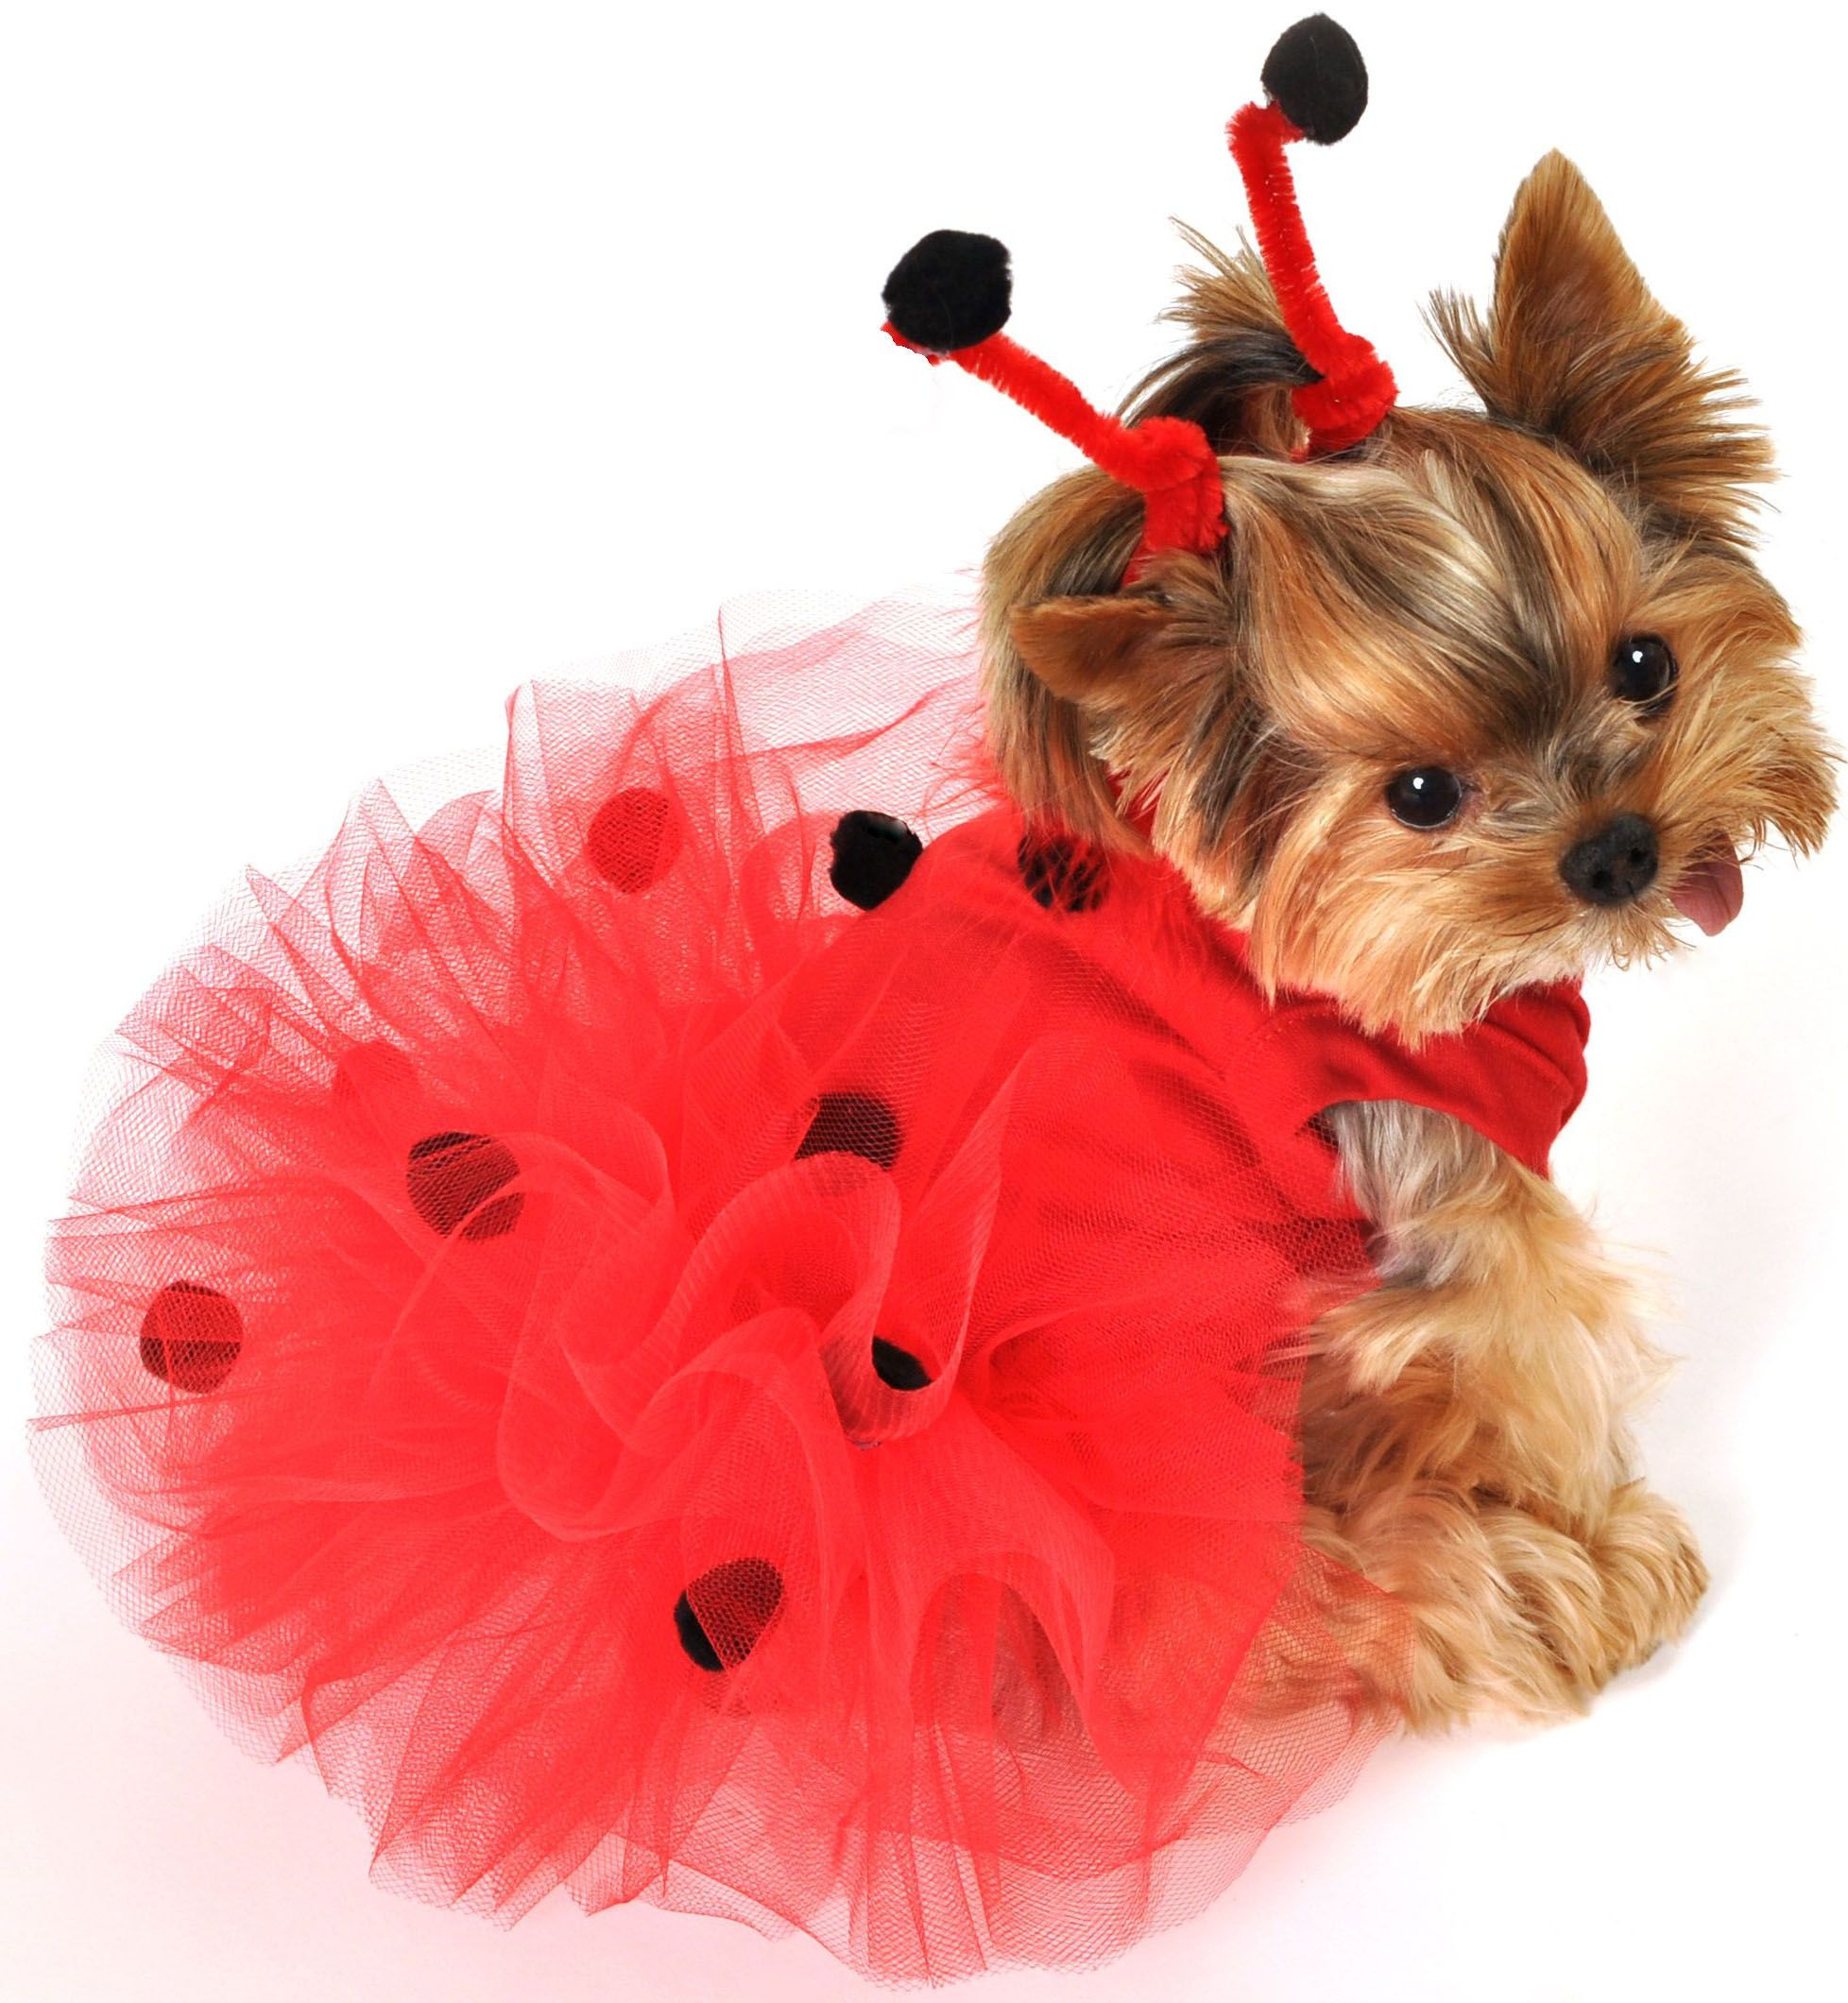 dog custumes halloween pet costumes puppy costume ladybug - Dogs With Halloween Costumes On